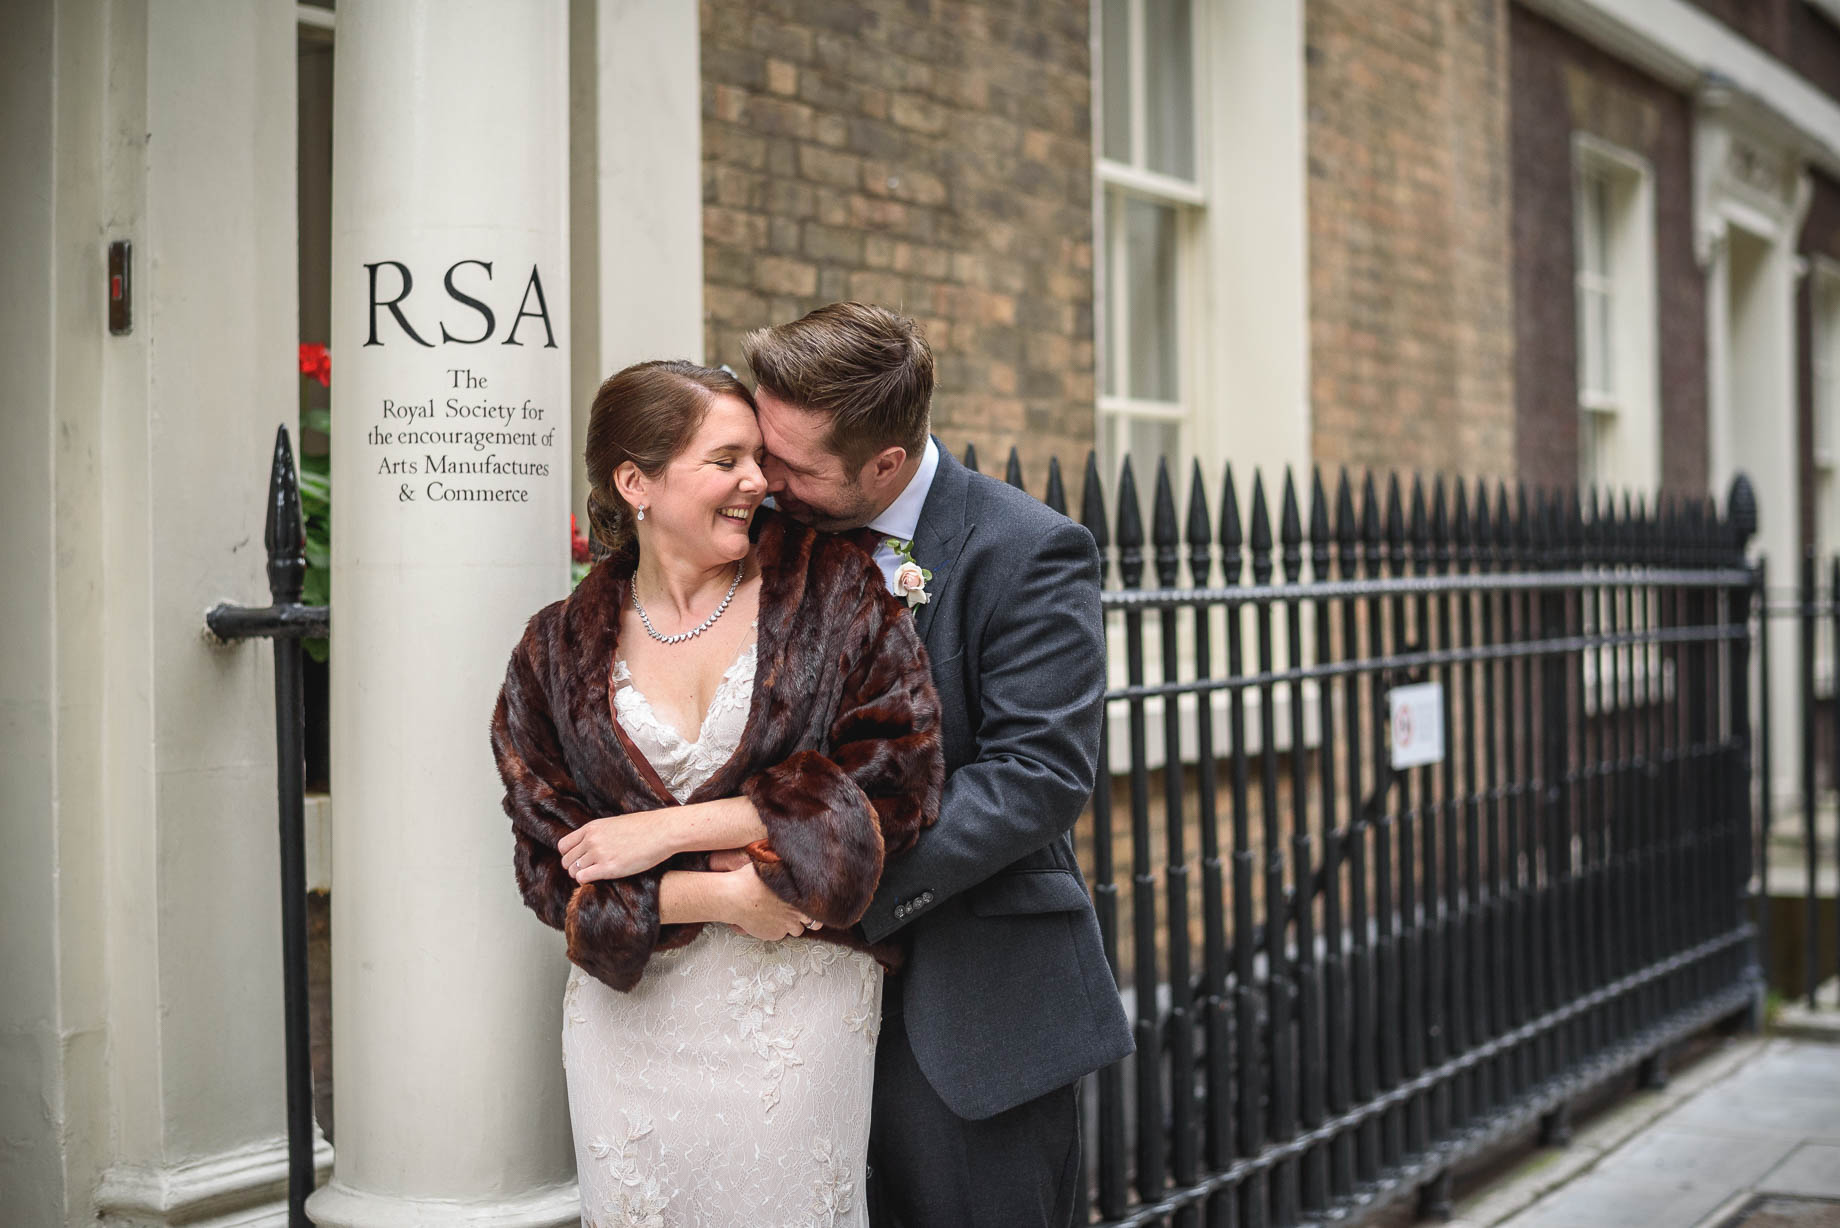 The RSA wedding photography - Johanna + Jack